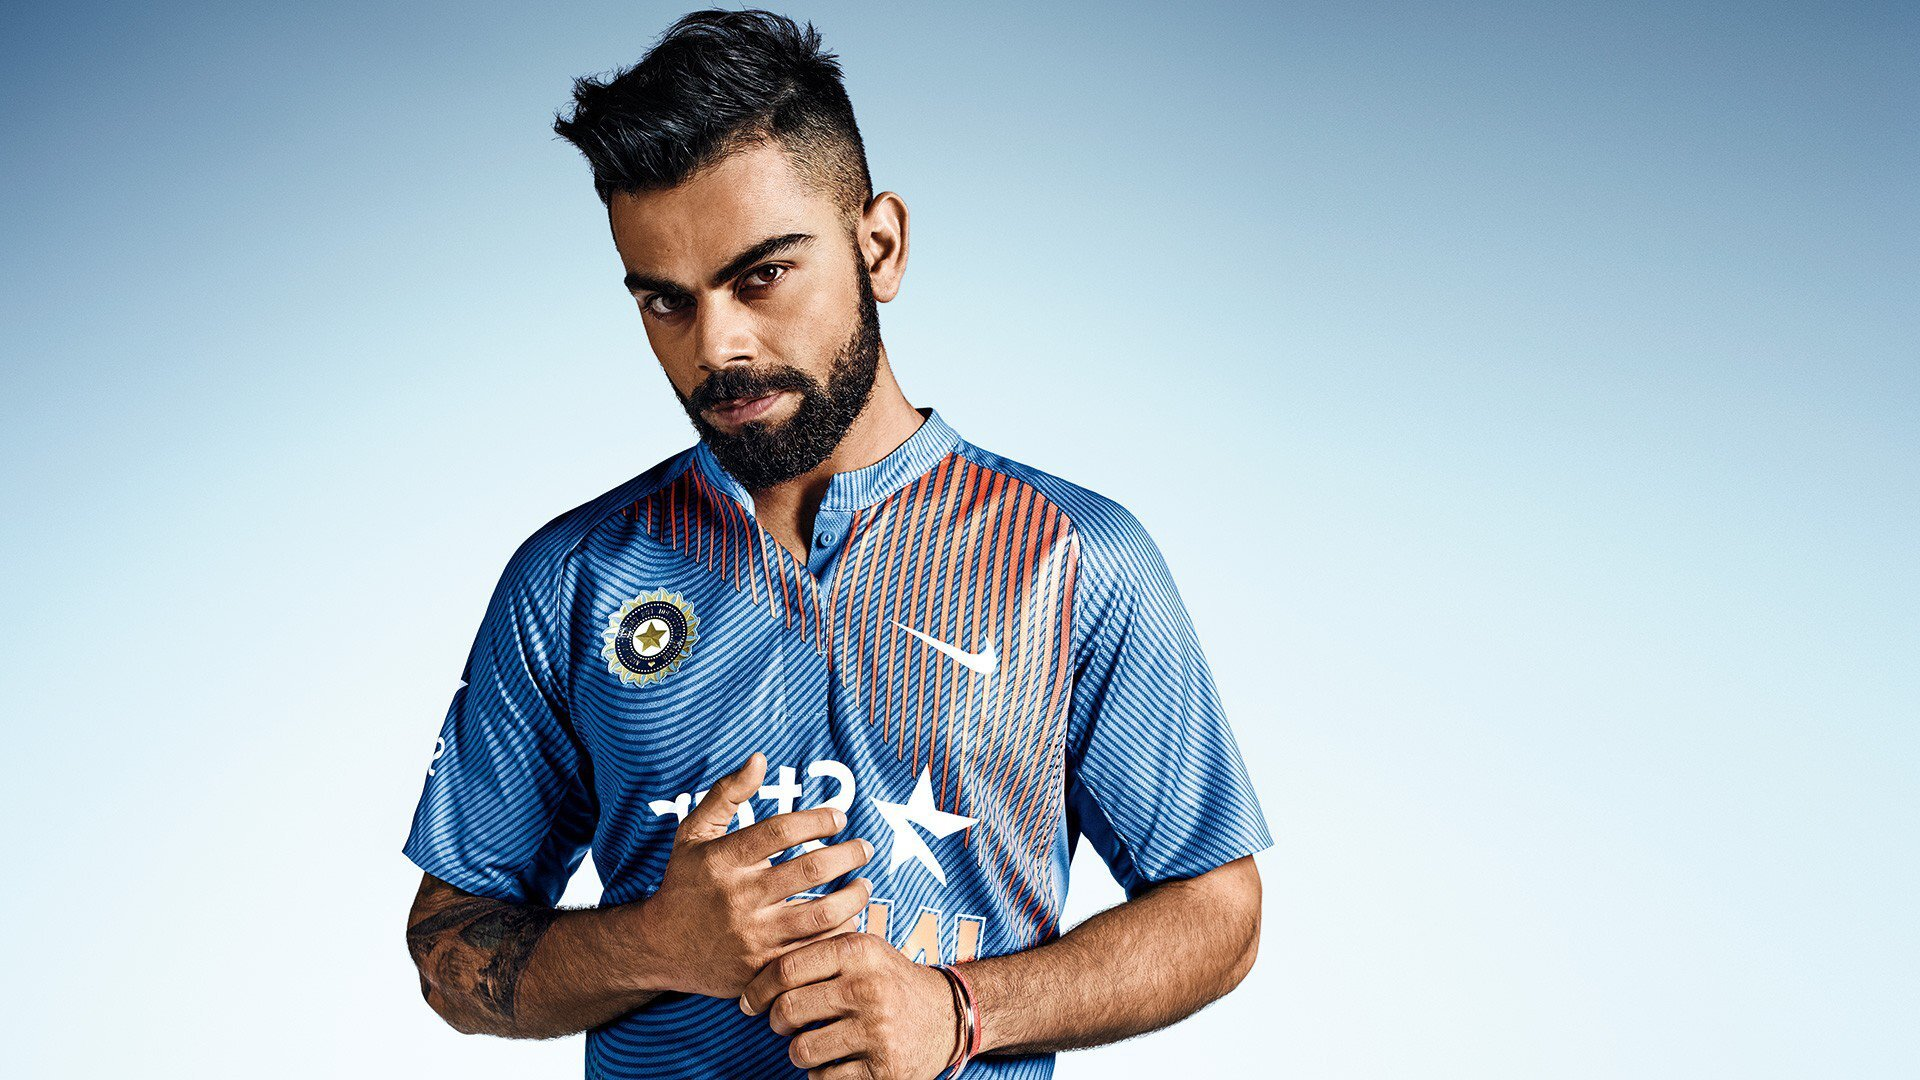 1920x1080 Virat Kohli Laptop Full Hd 1080p Hd 4k Wallpapers Images Backgrounds Photos And Pictures